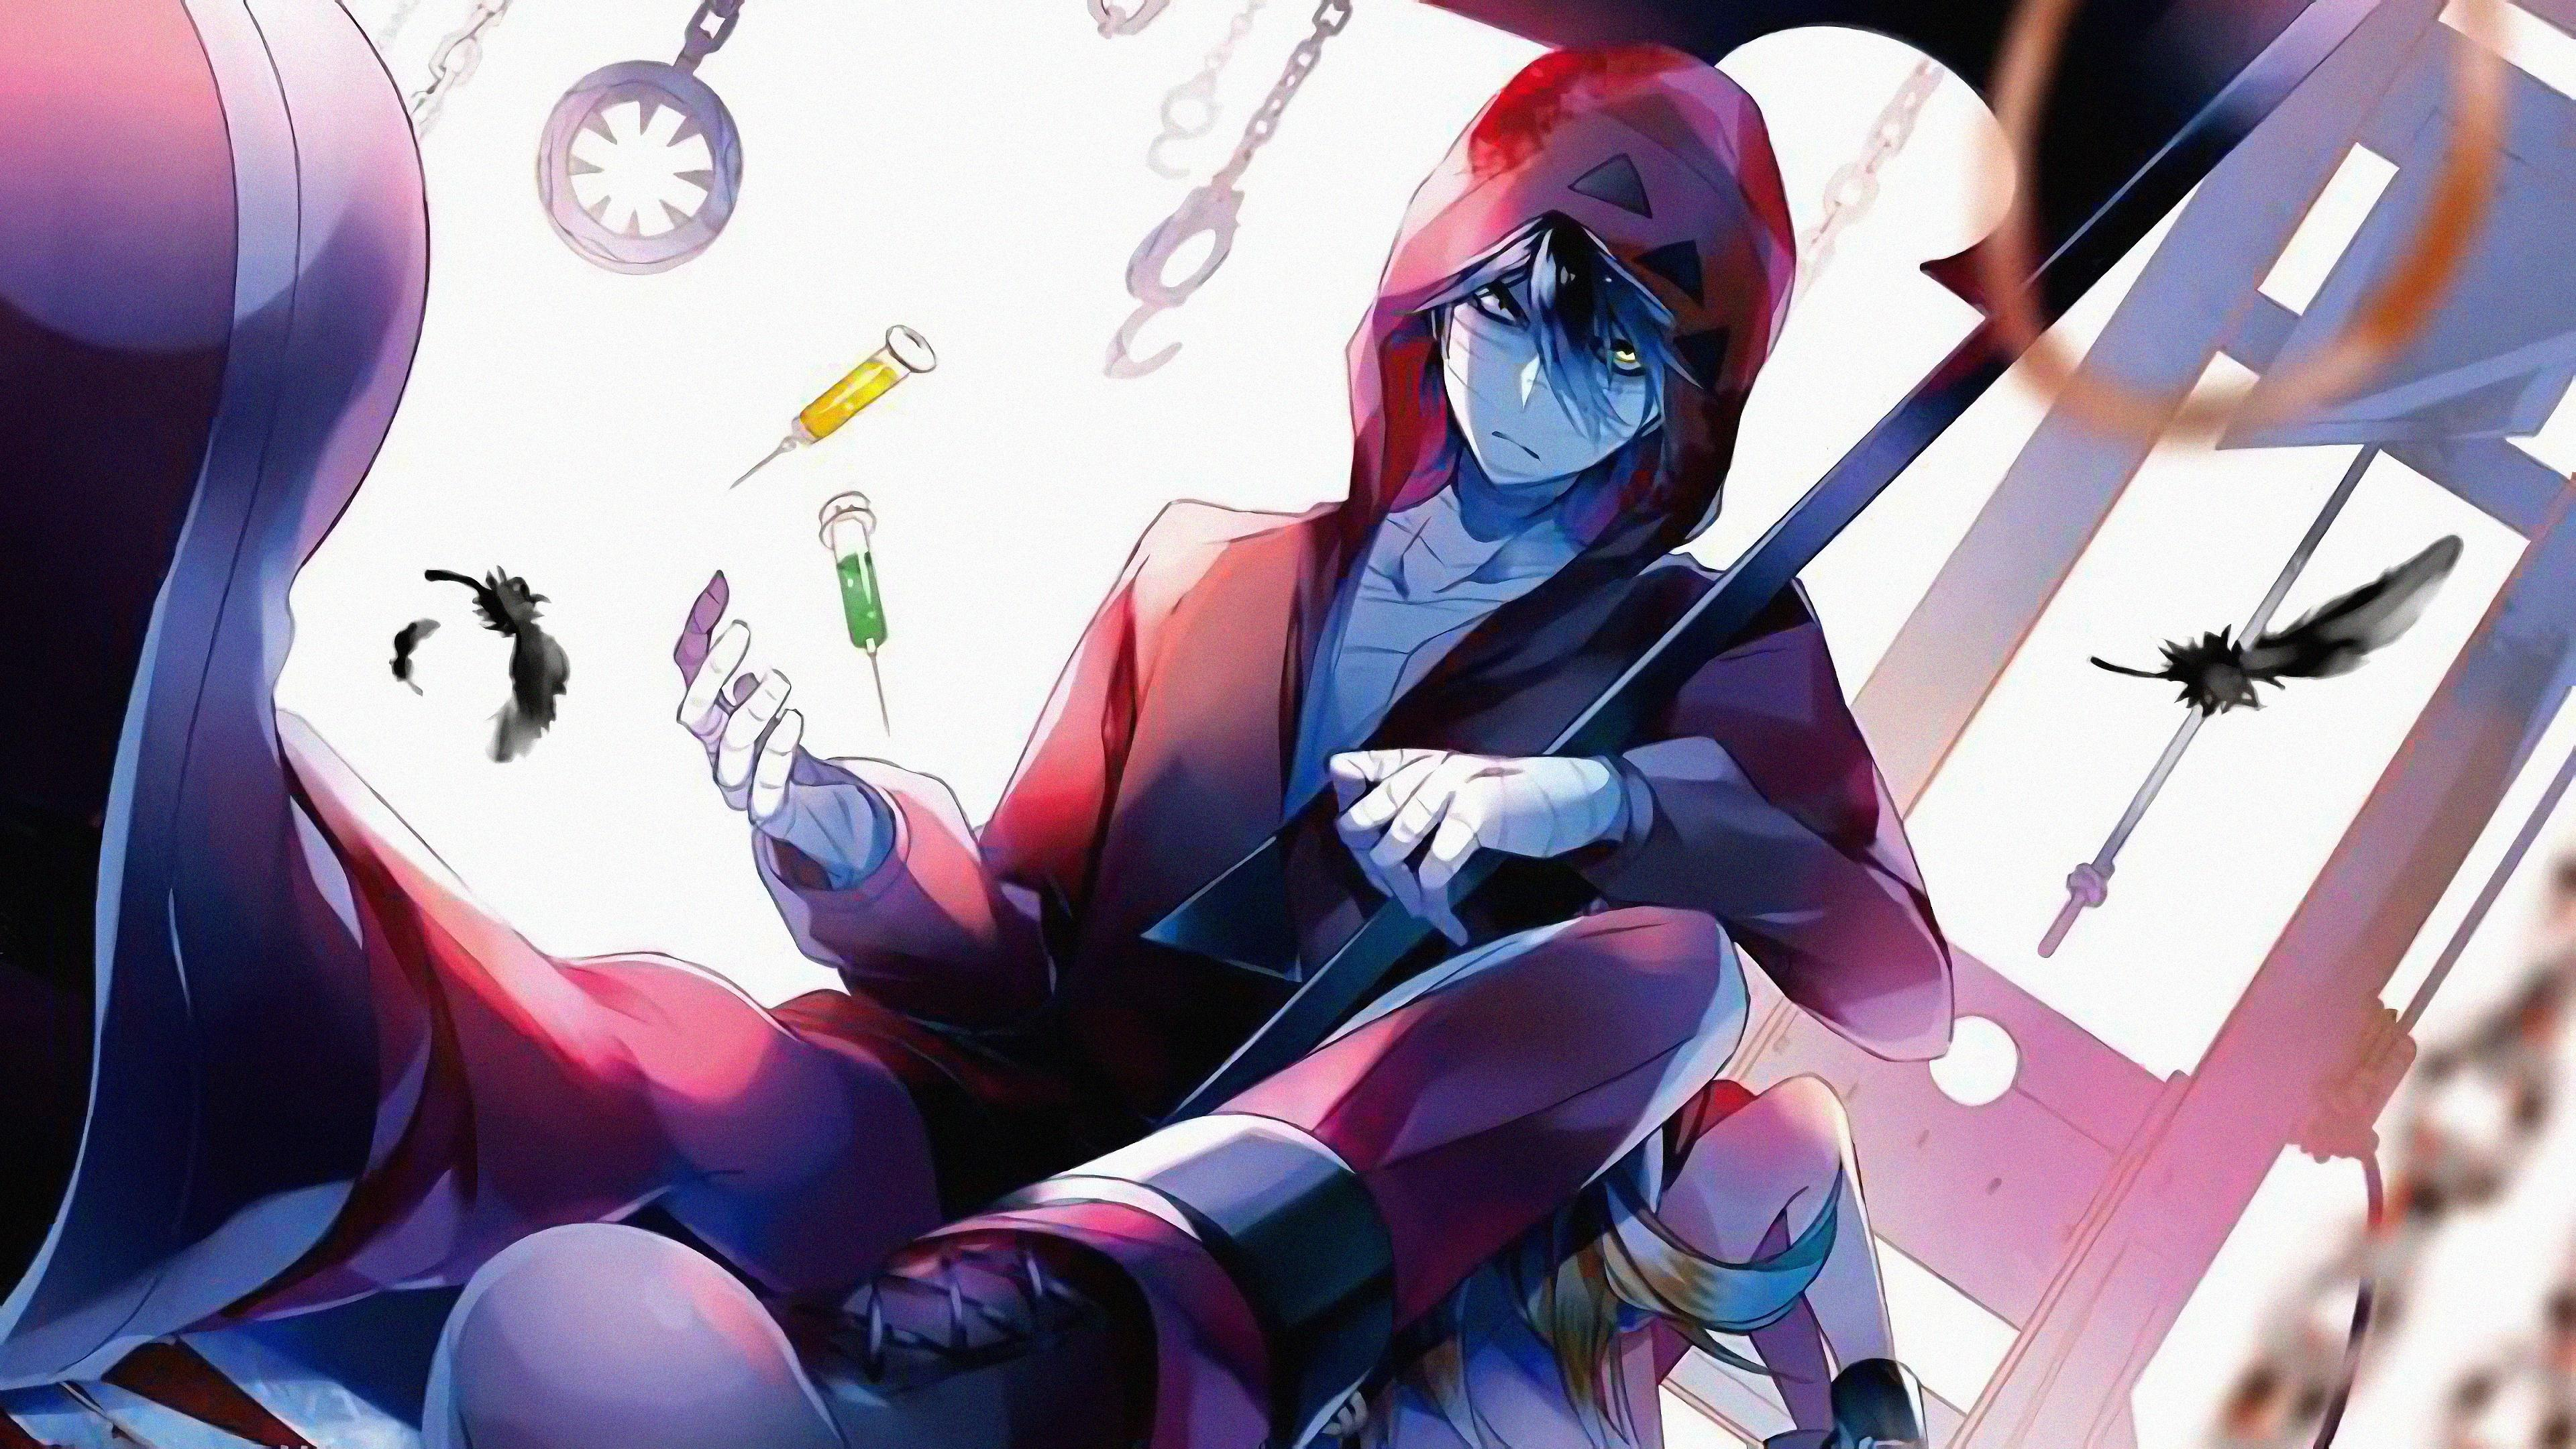 Angels Of Death Anime Wallpapers Wallpaper Cave